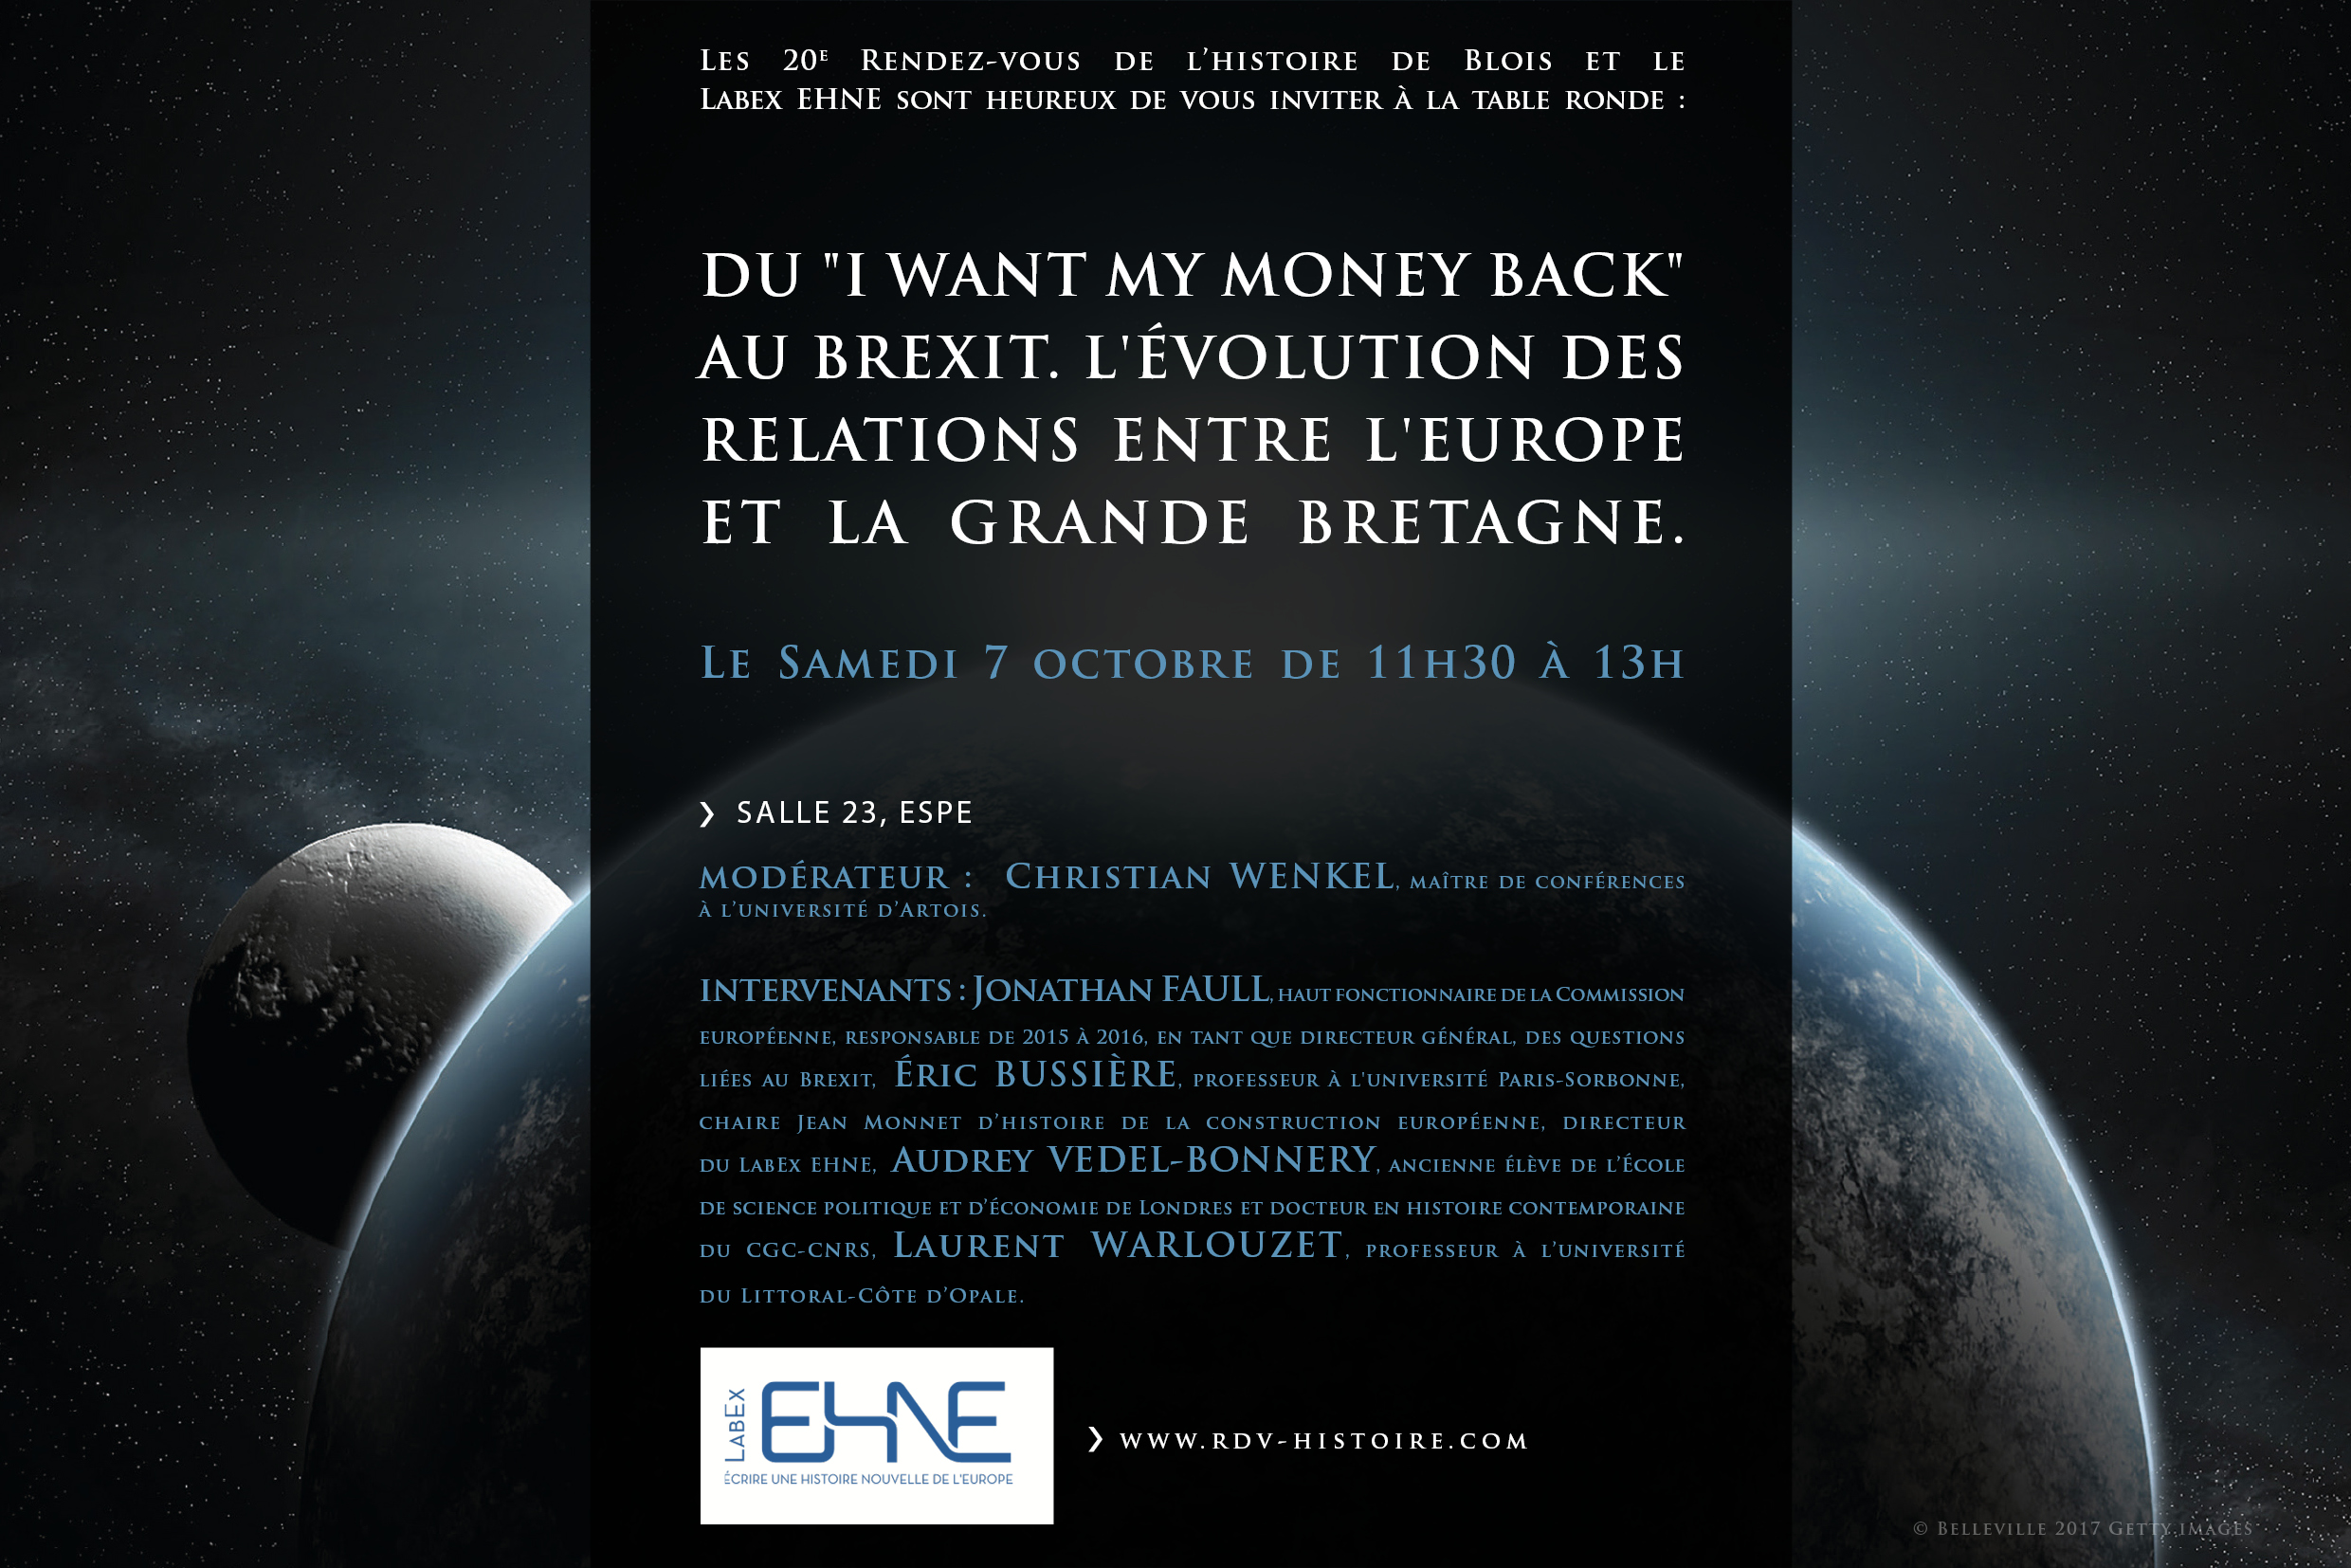 "Du I want my money back au brexit "" @ ESPÉ, Salle 23 